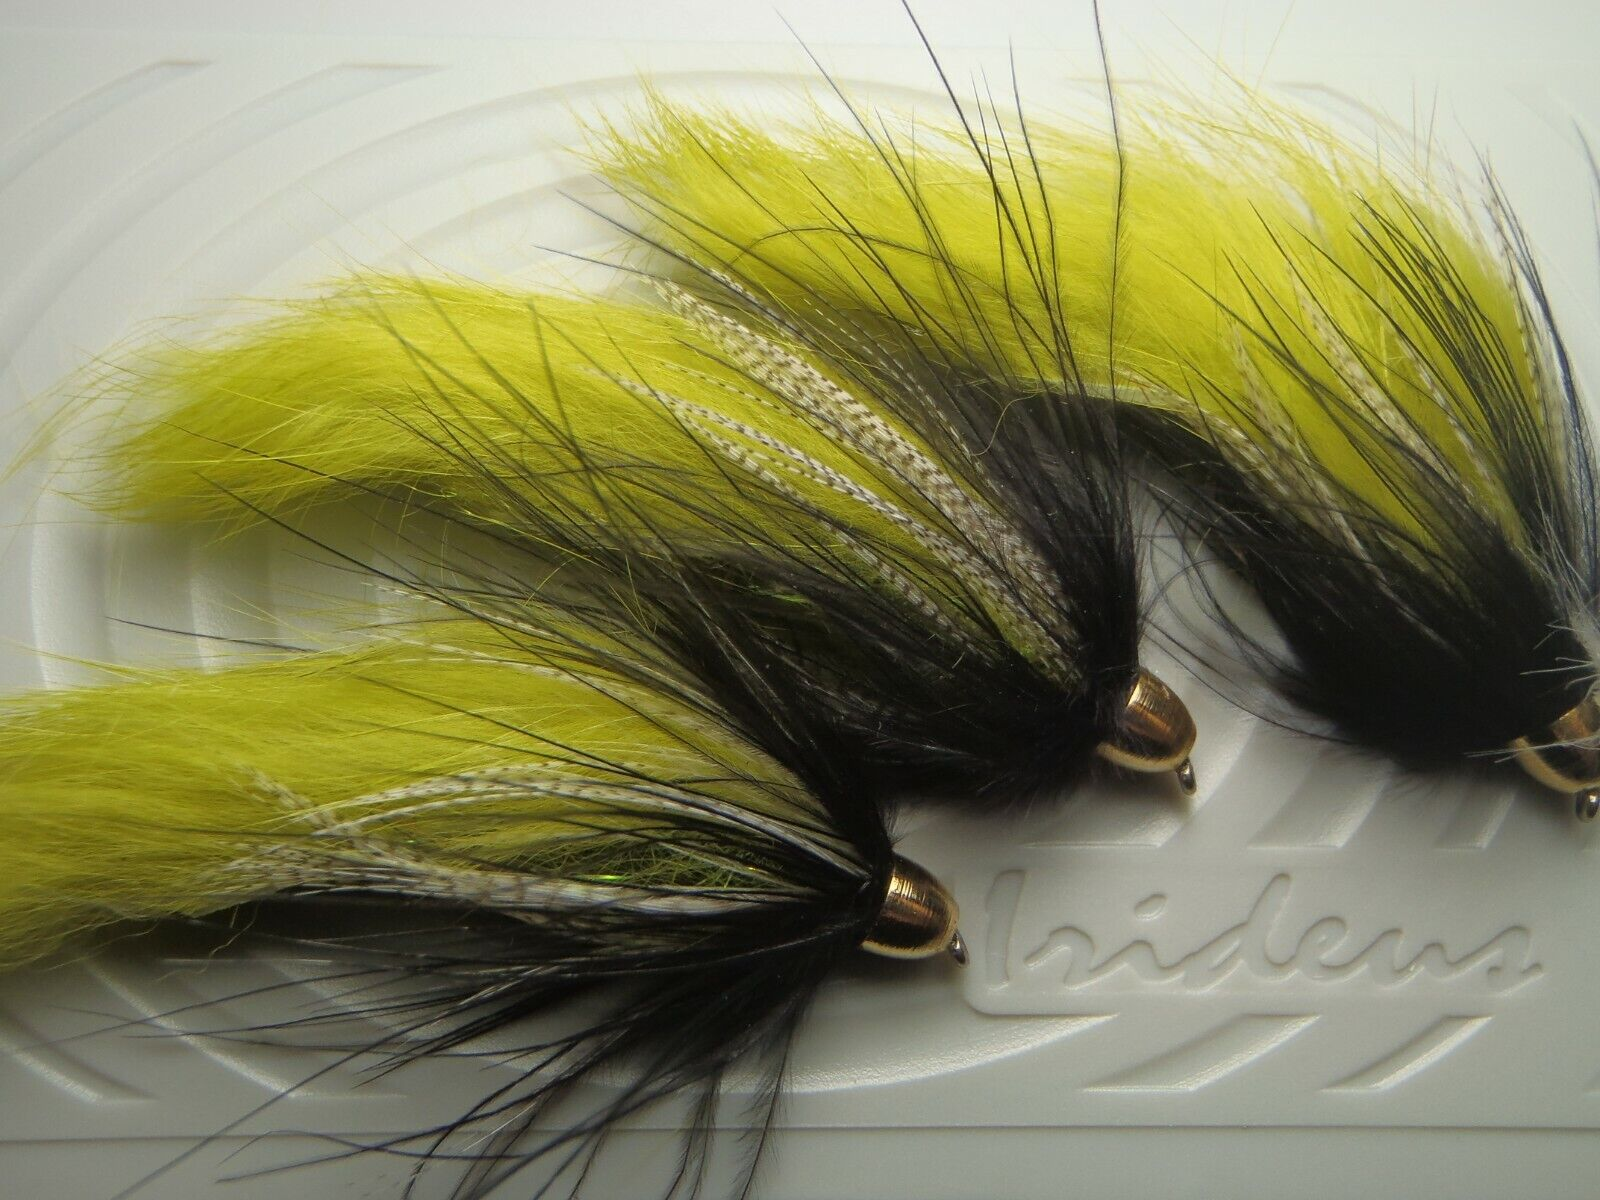 Irideus D Lite Soft Hackle Wooly Bugger Streamer Flies Trout Fly Fishing - $9.99